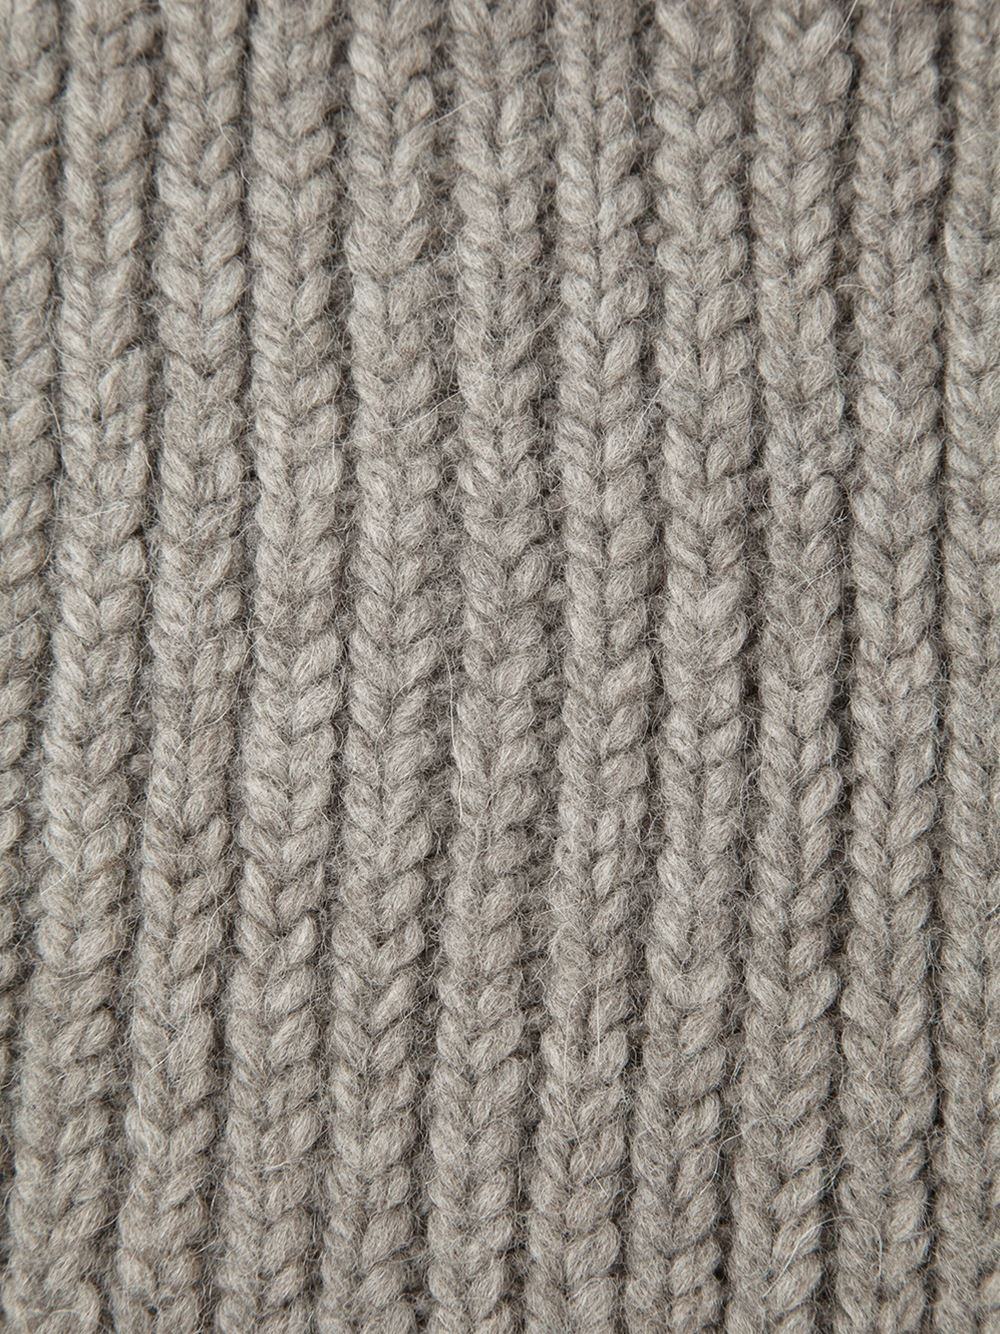 Lyst - Ann Demeulemeester Grise Ribbed Knit Scarf in Gray for Men